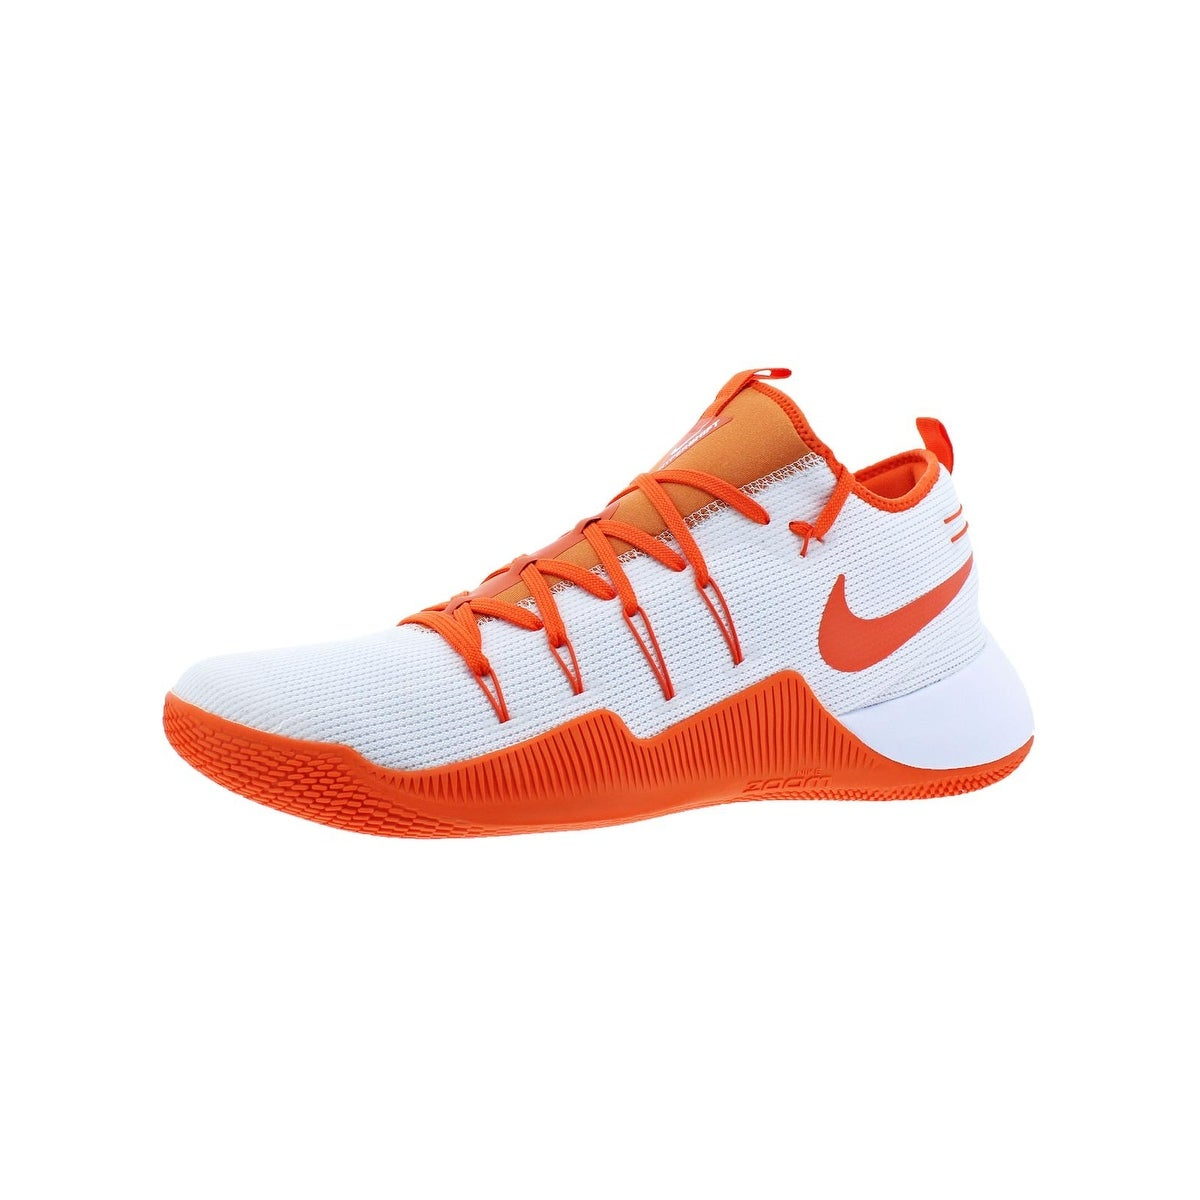 1ba56dd9eed3 Shop Nike Mens Hypershift TB PROMO Basketball Shoes Mid Top Nike Zoom -  Free Shipping On Orders Over  45 - Overstock - 21942603